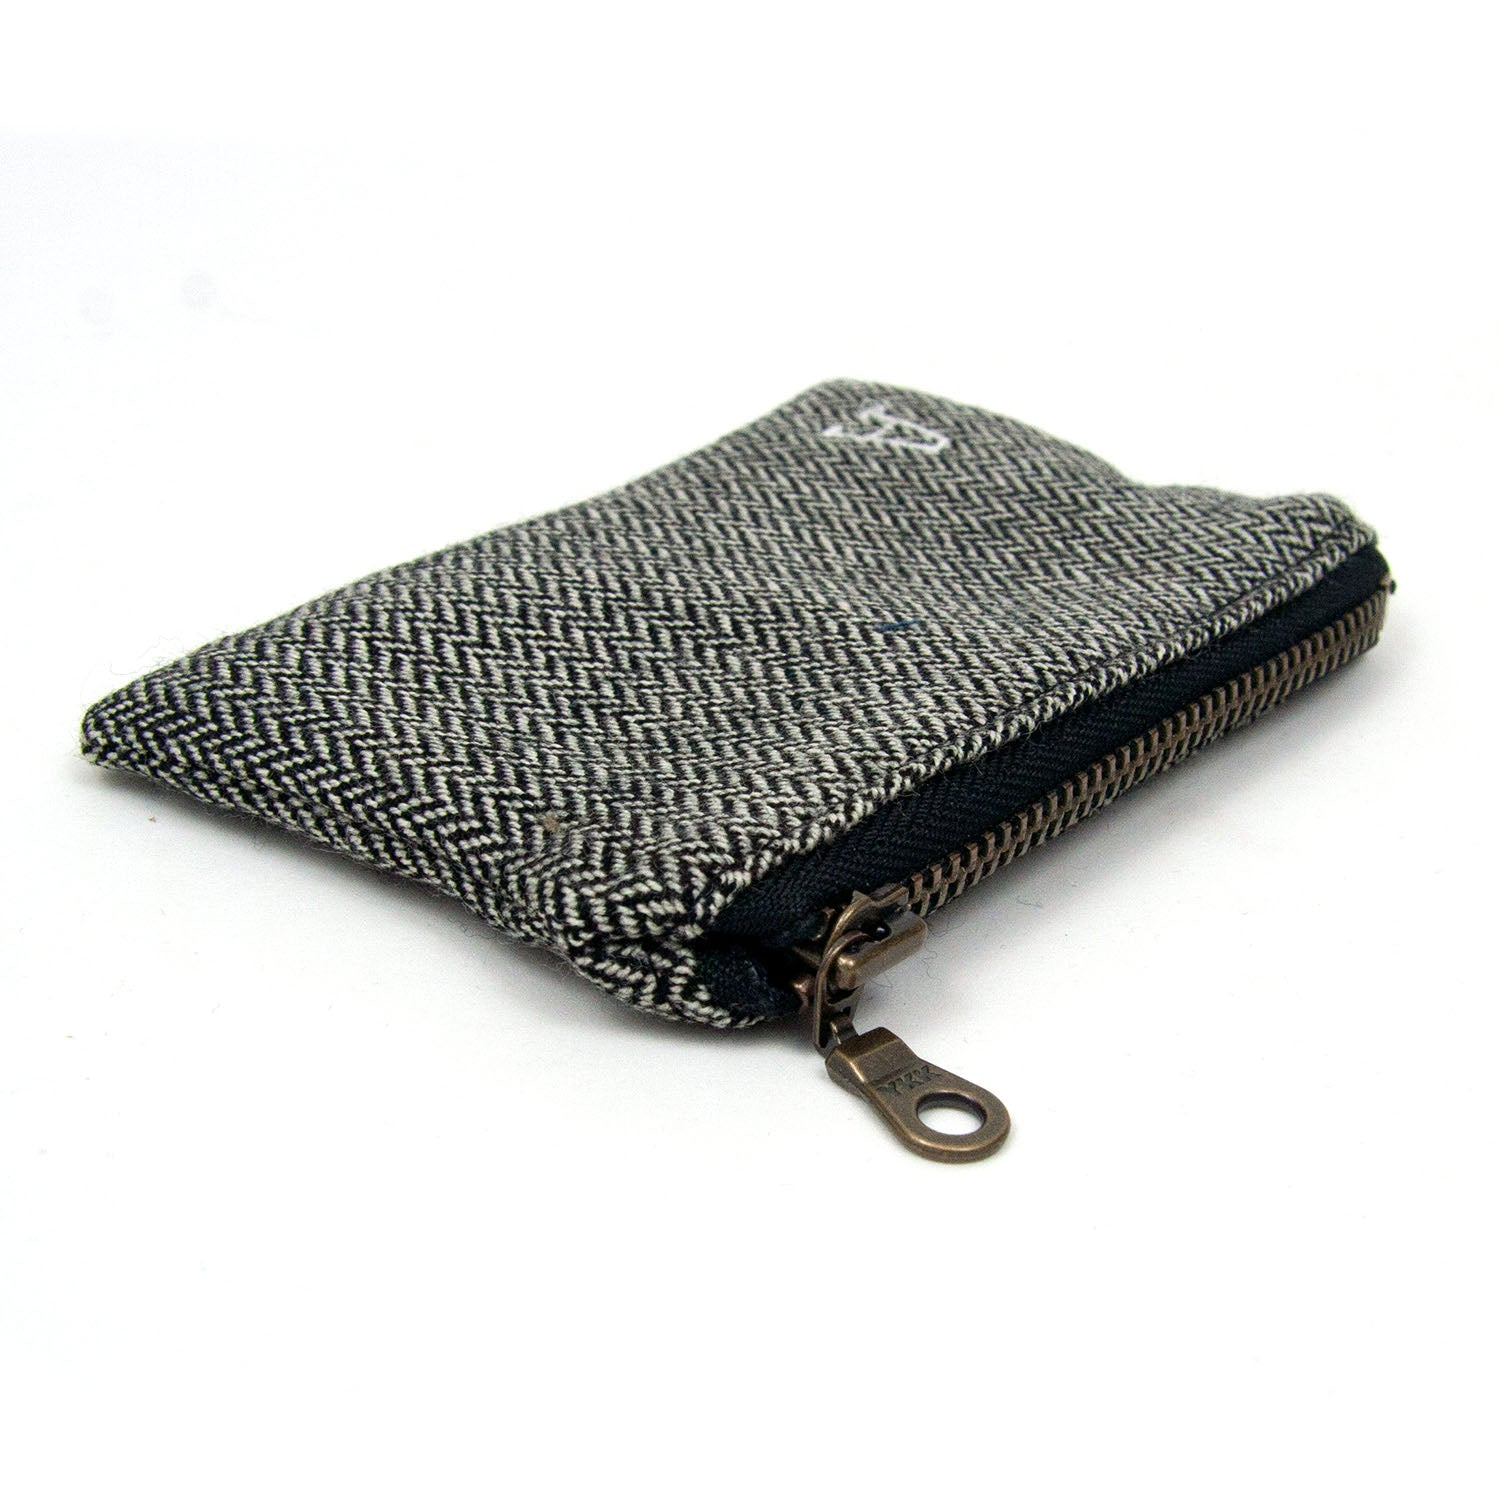 Personalized Coin Purse - Herringbone